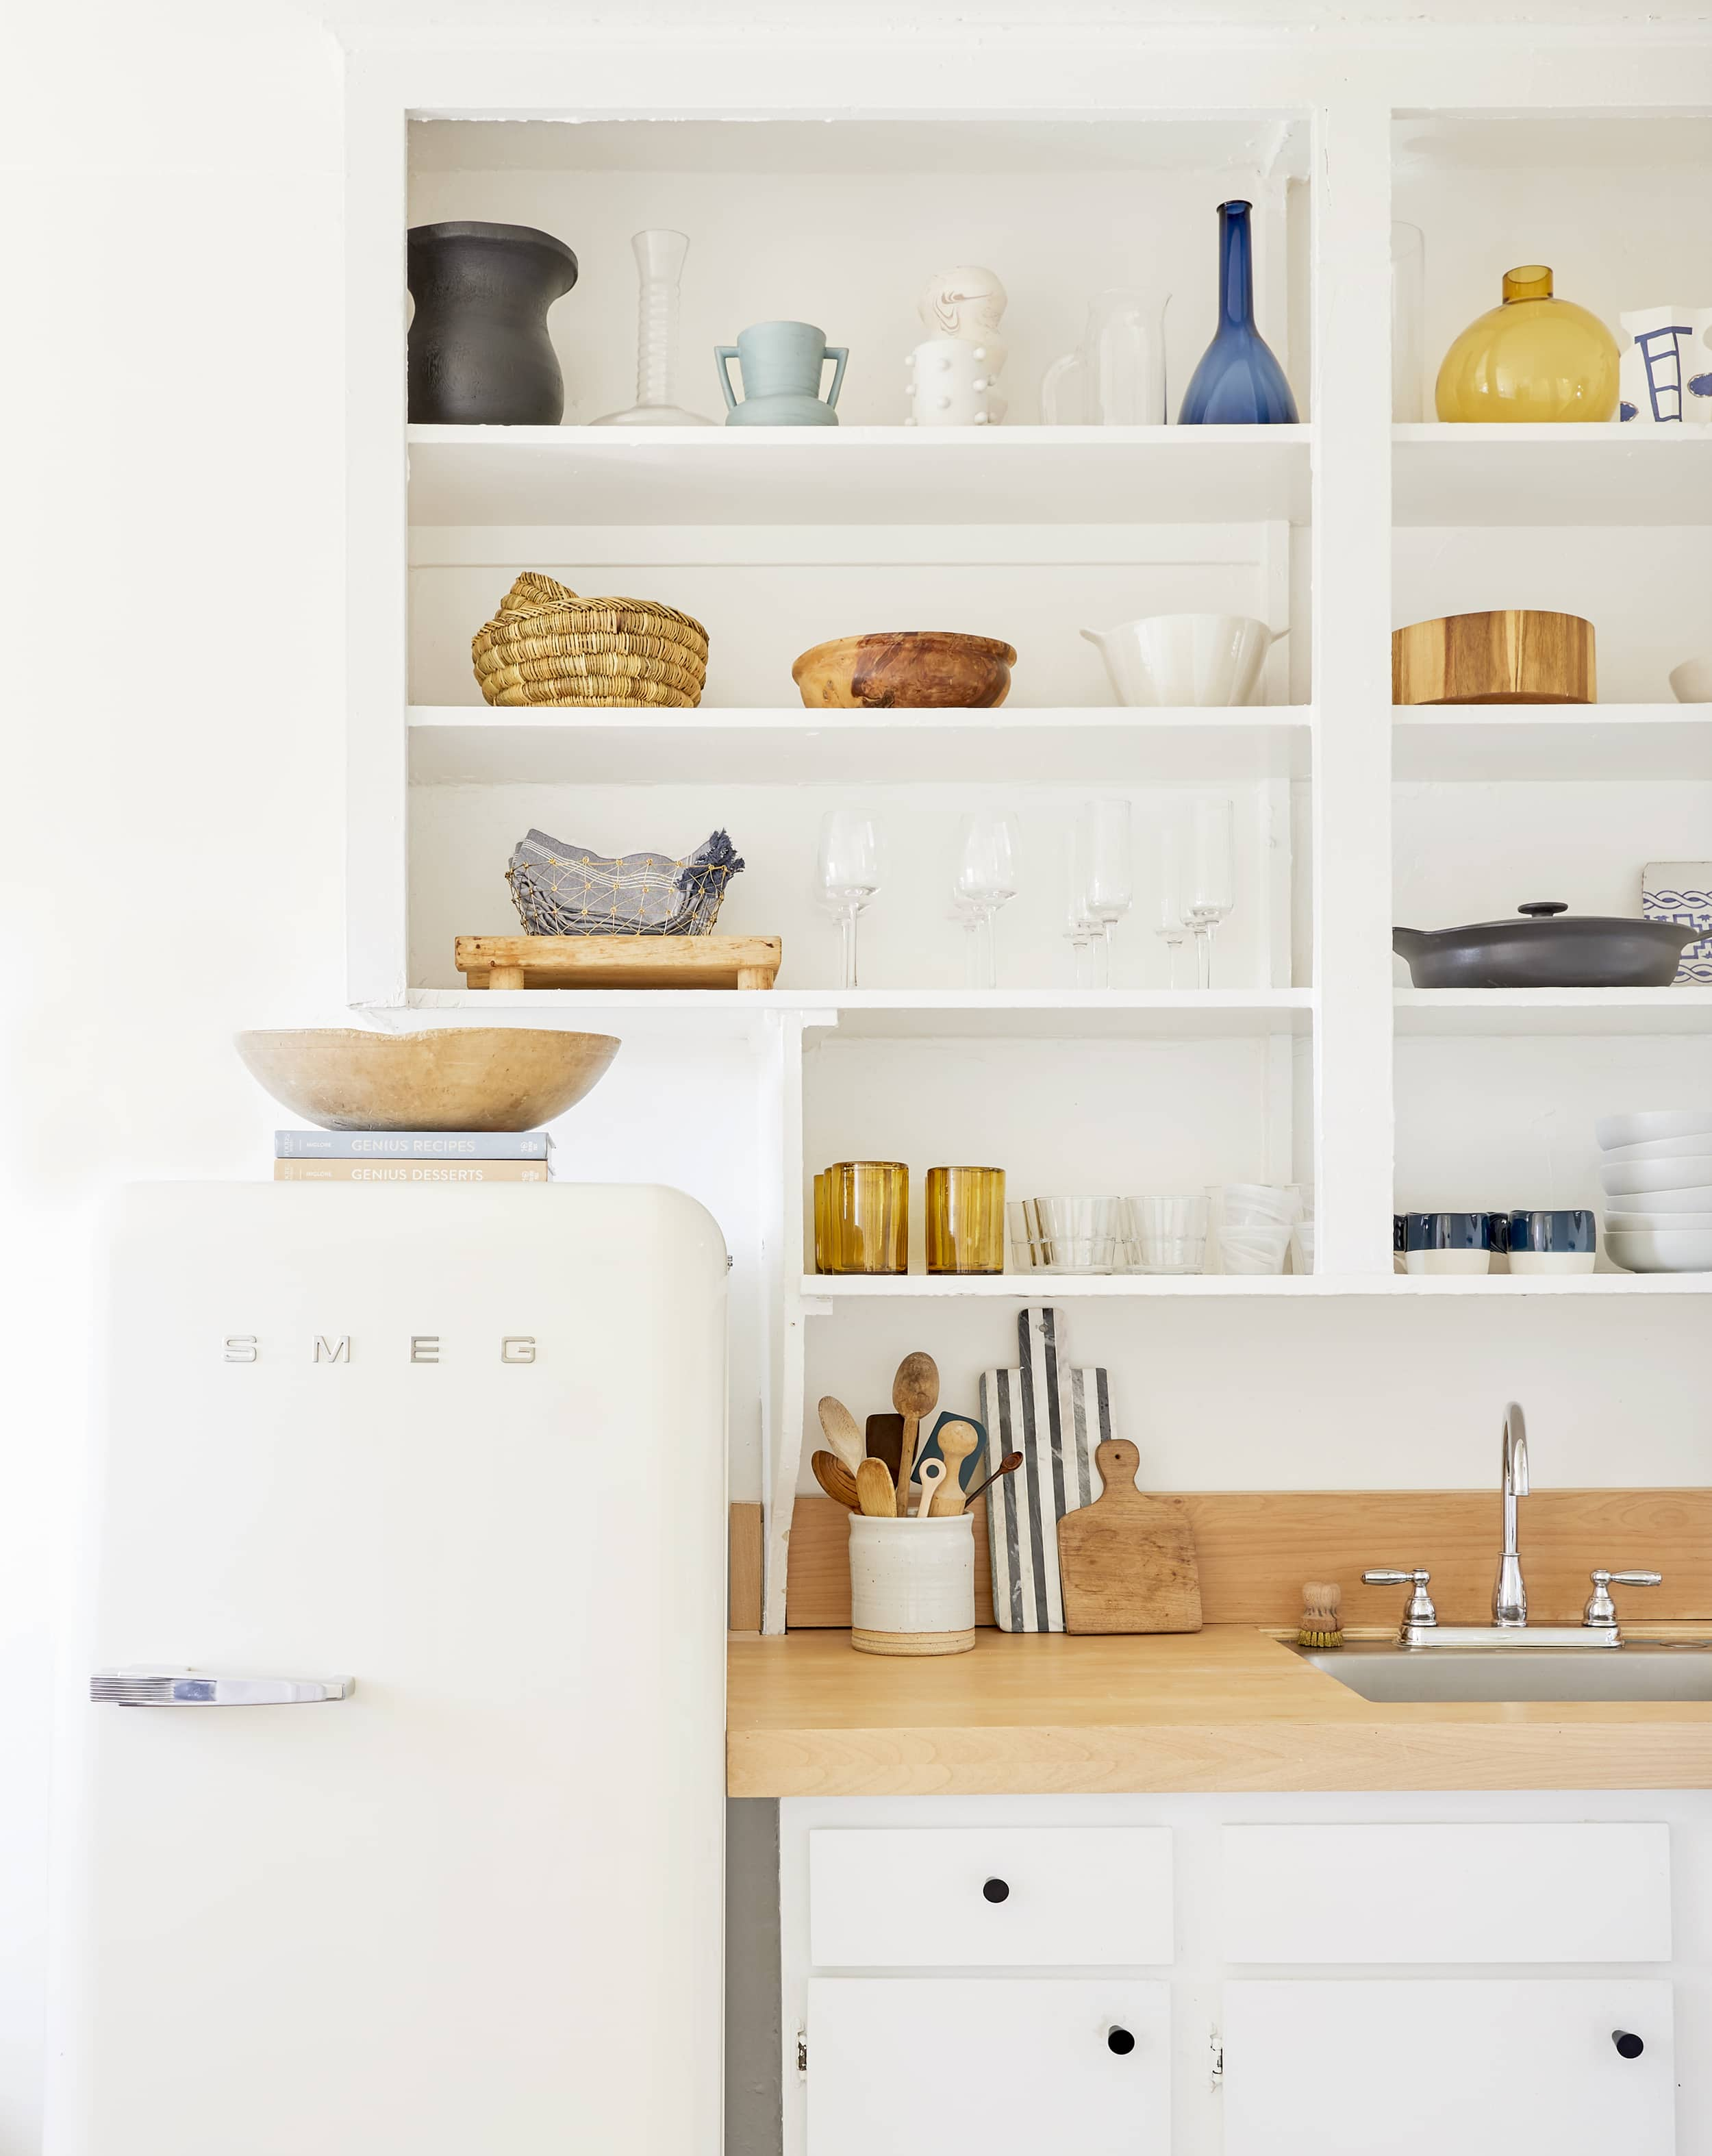 A Super Stylish Small Rental Kitchen With Diys You Ll Want To Try For Yourself